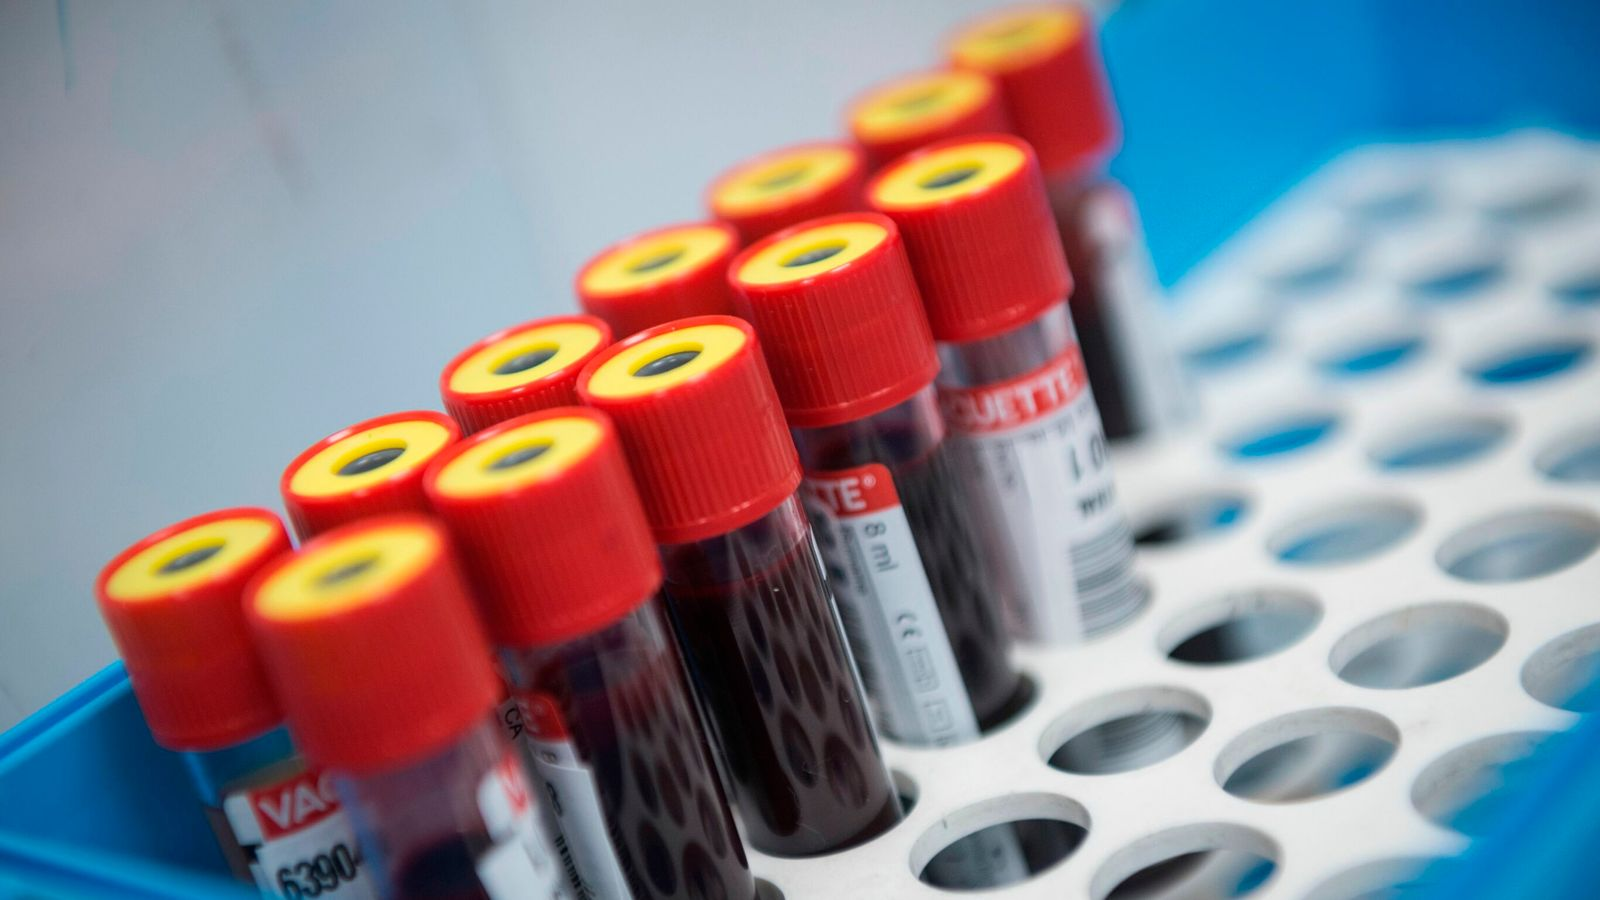 Infected blood inquiry: Key witness disagrees with compensation 'as it suggests liability'